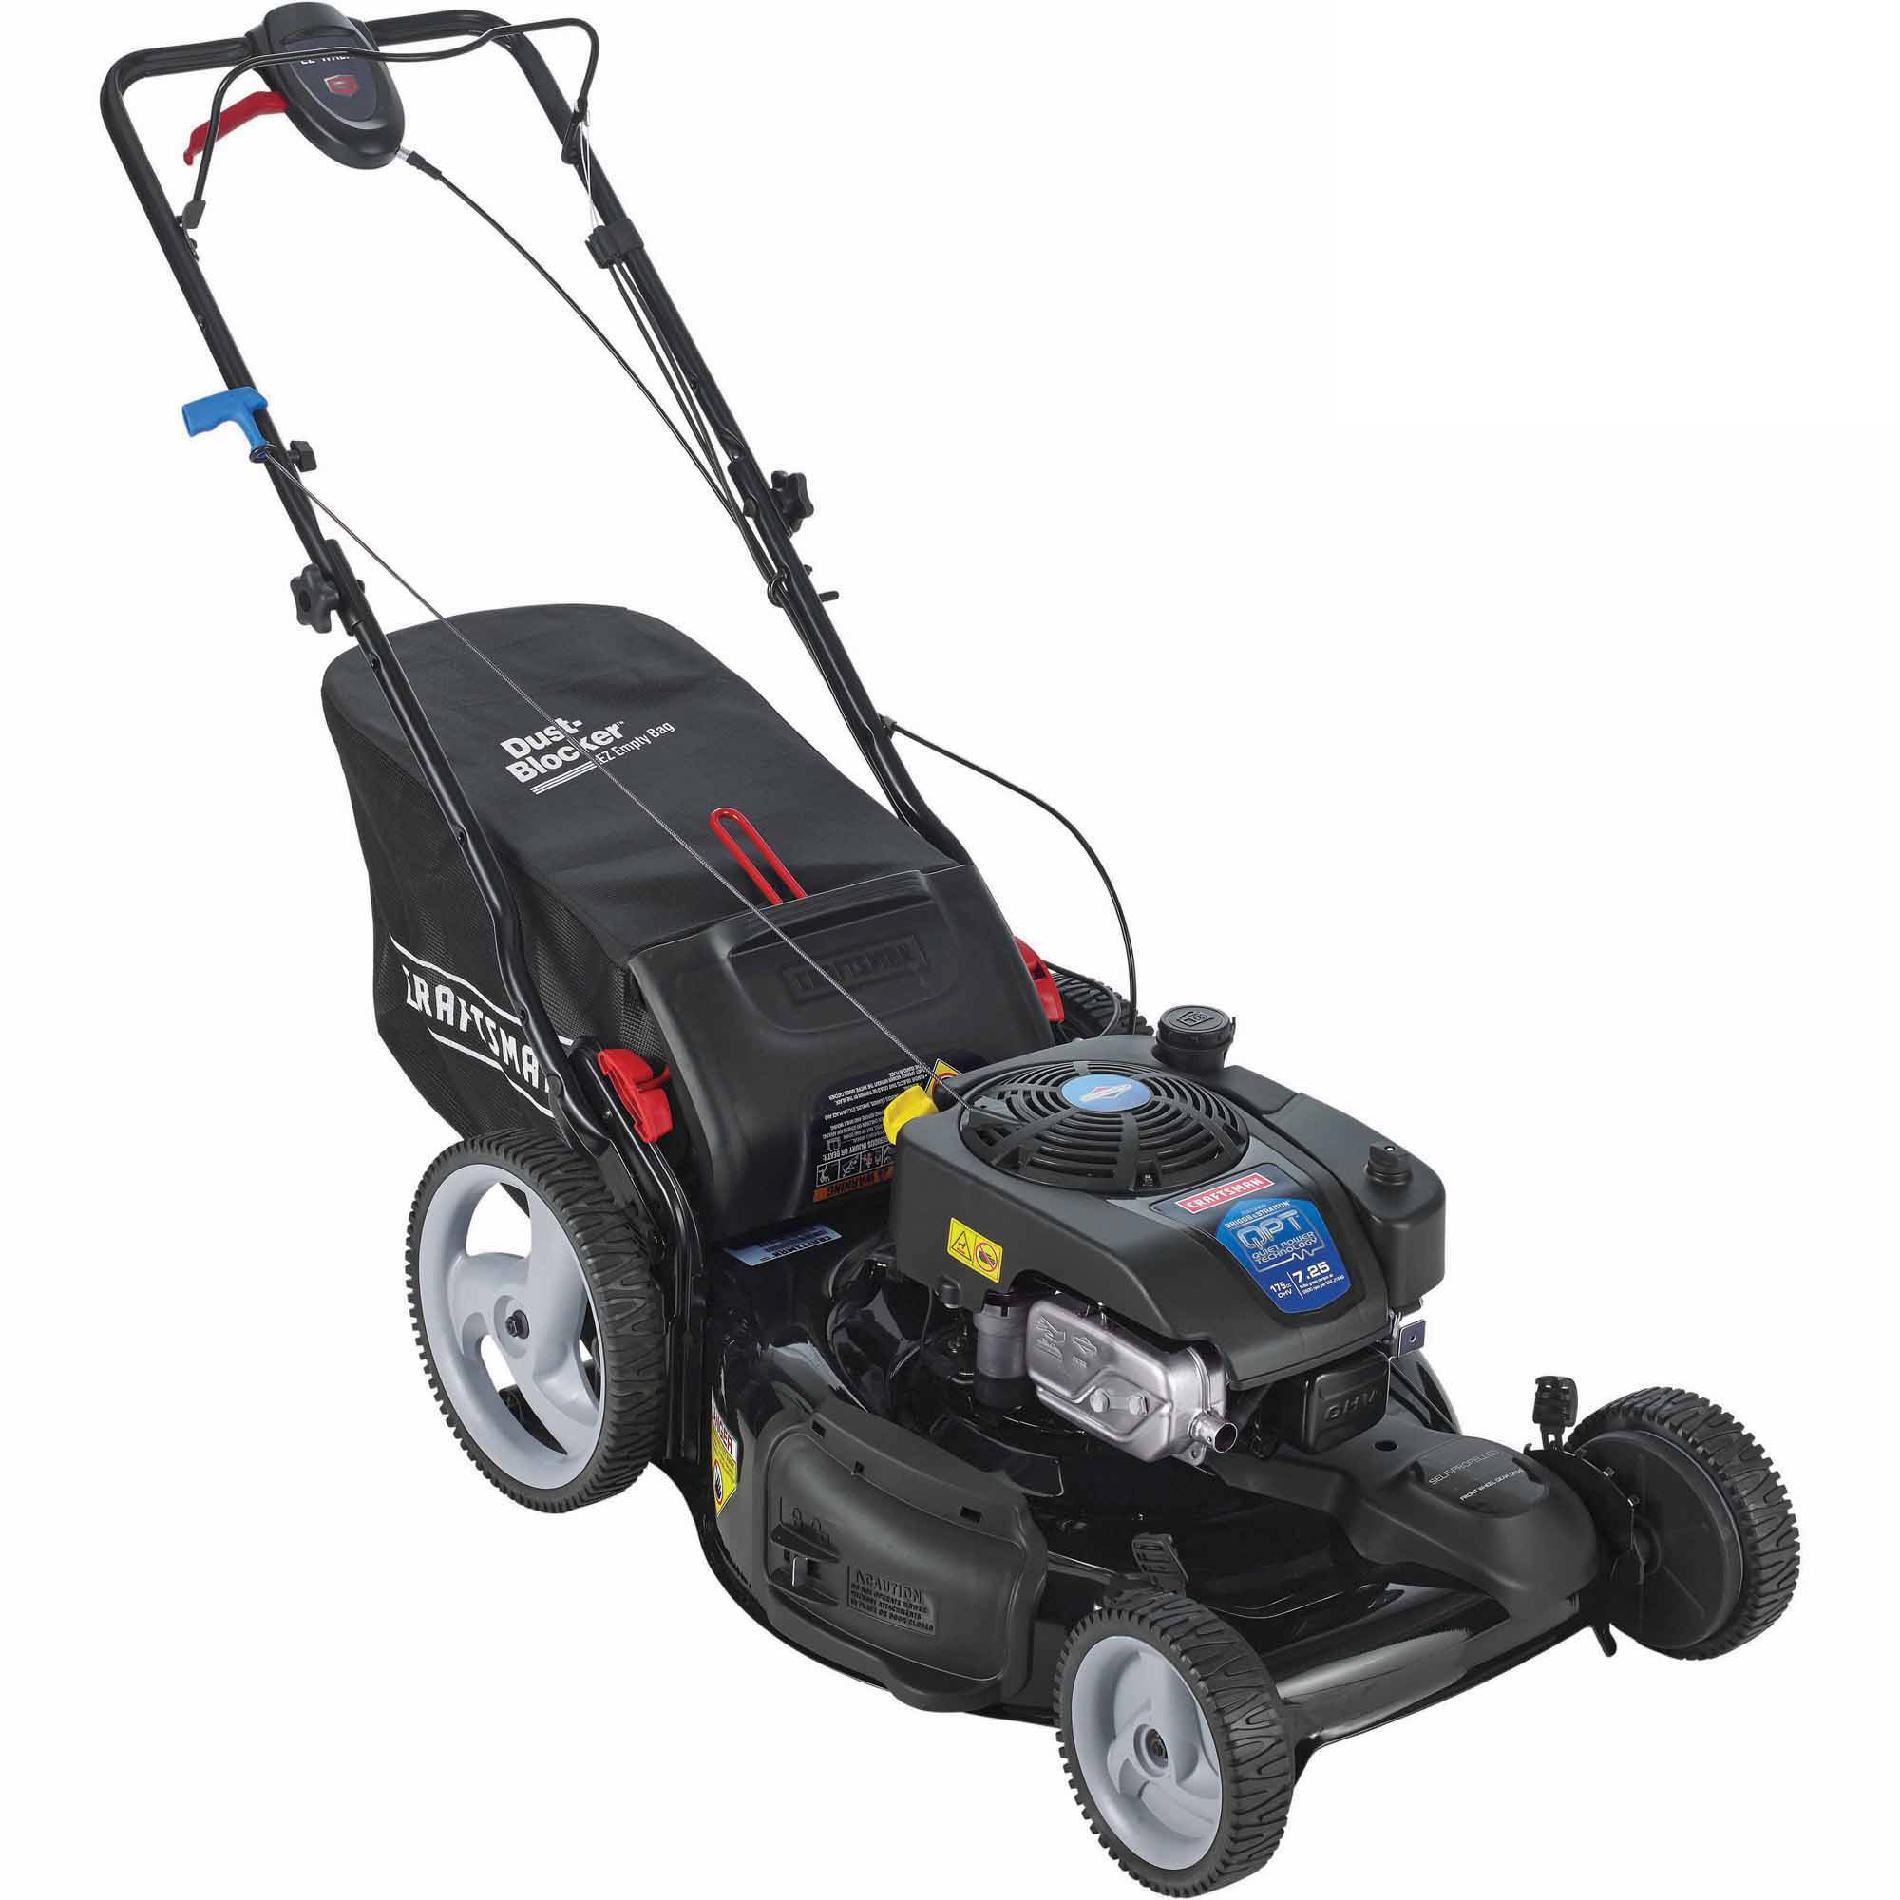 Craftsman 175cc OHV Briggs & Stratton Quiet Power Technology Engine, 22 Front Drive Self-Propelled Lawn Mower